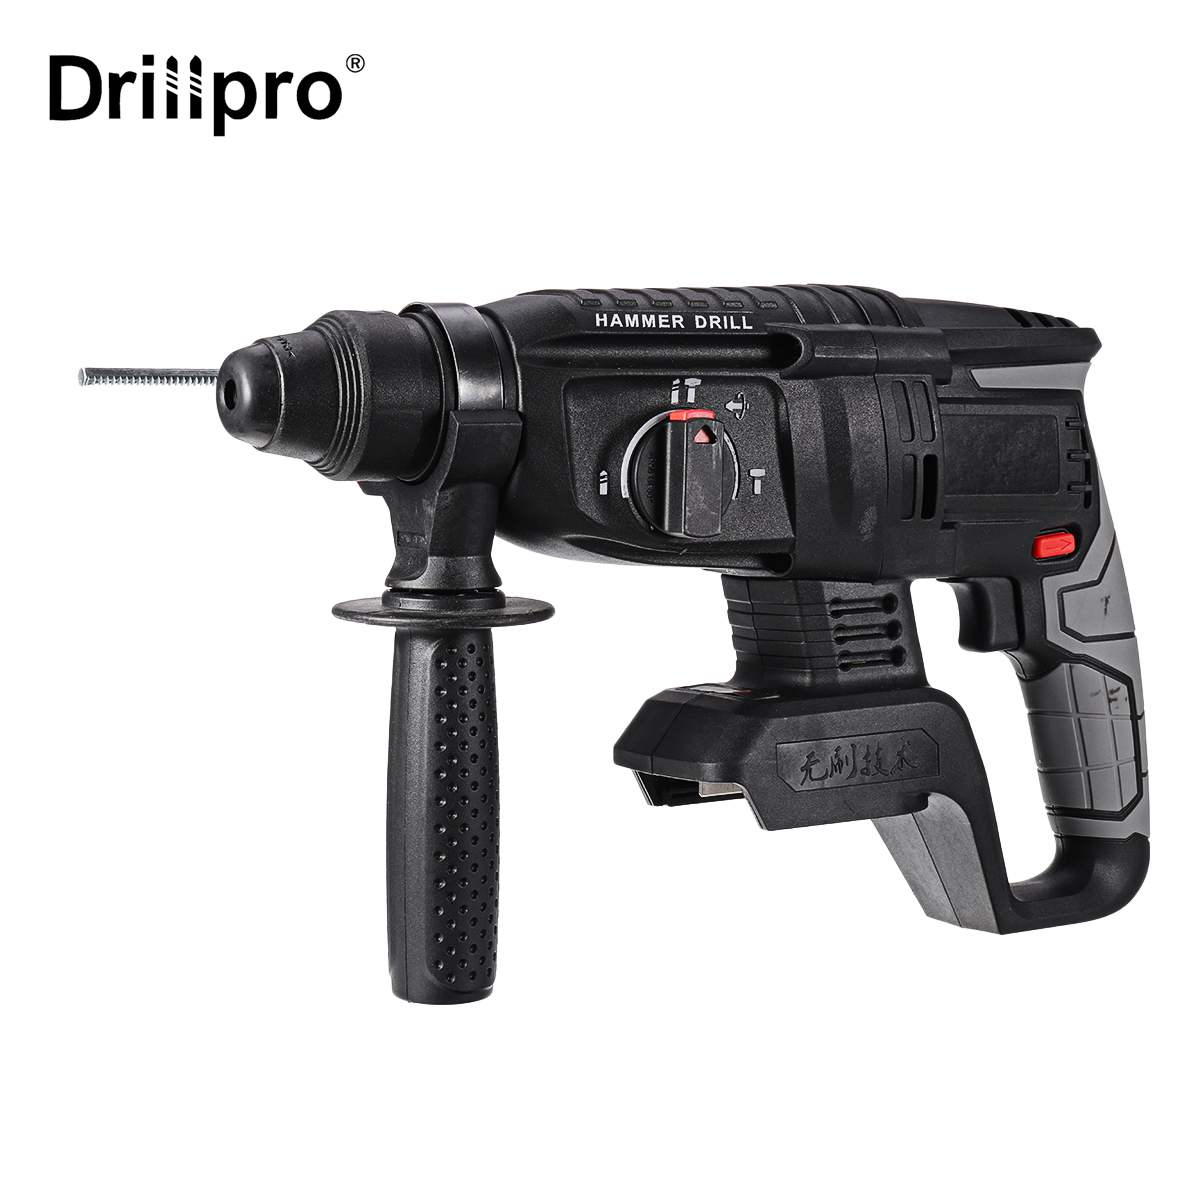 Brushless Electric Rotary Hammer Rechargeable Multifunction Hammer Impact Power Drill Tool for 198Vf Makita Battery